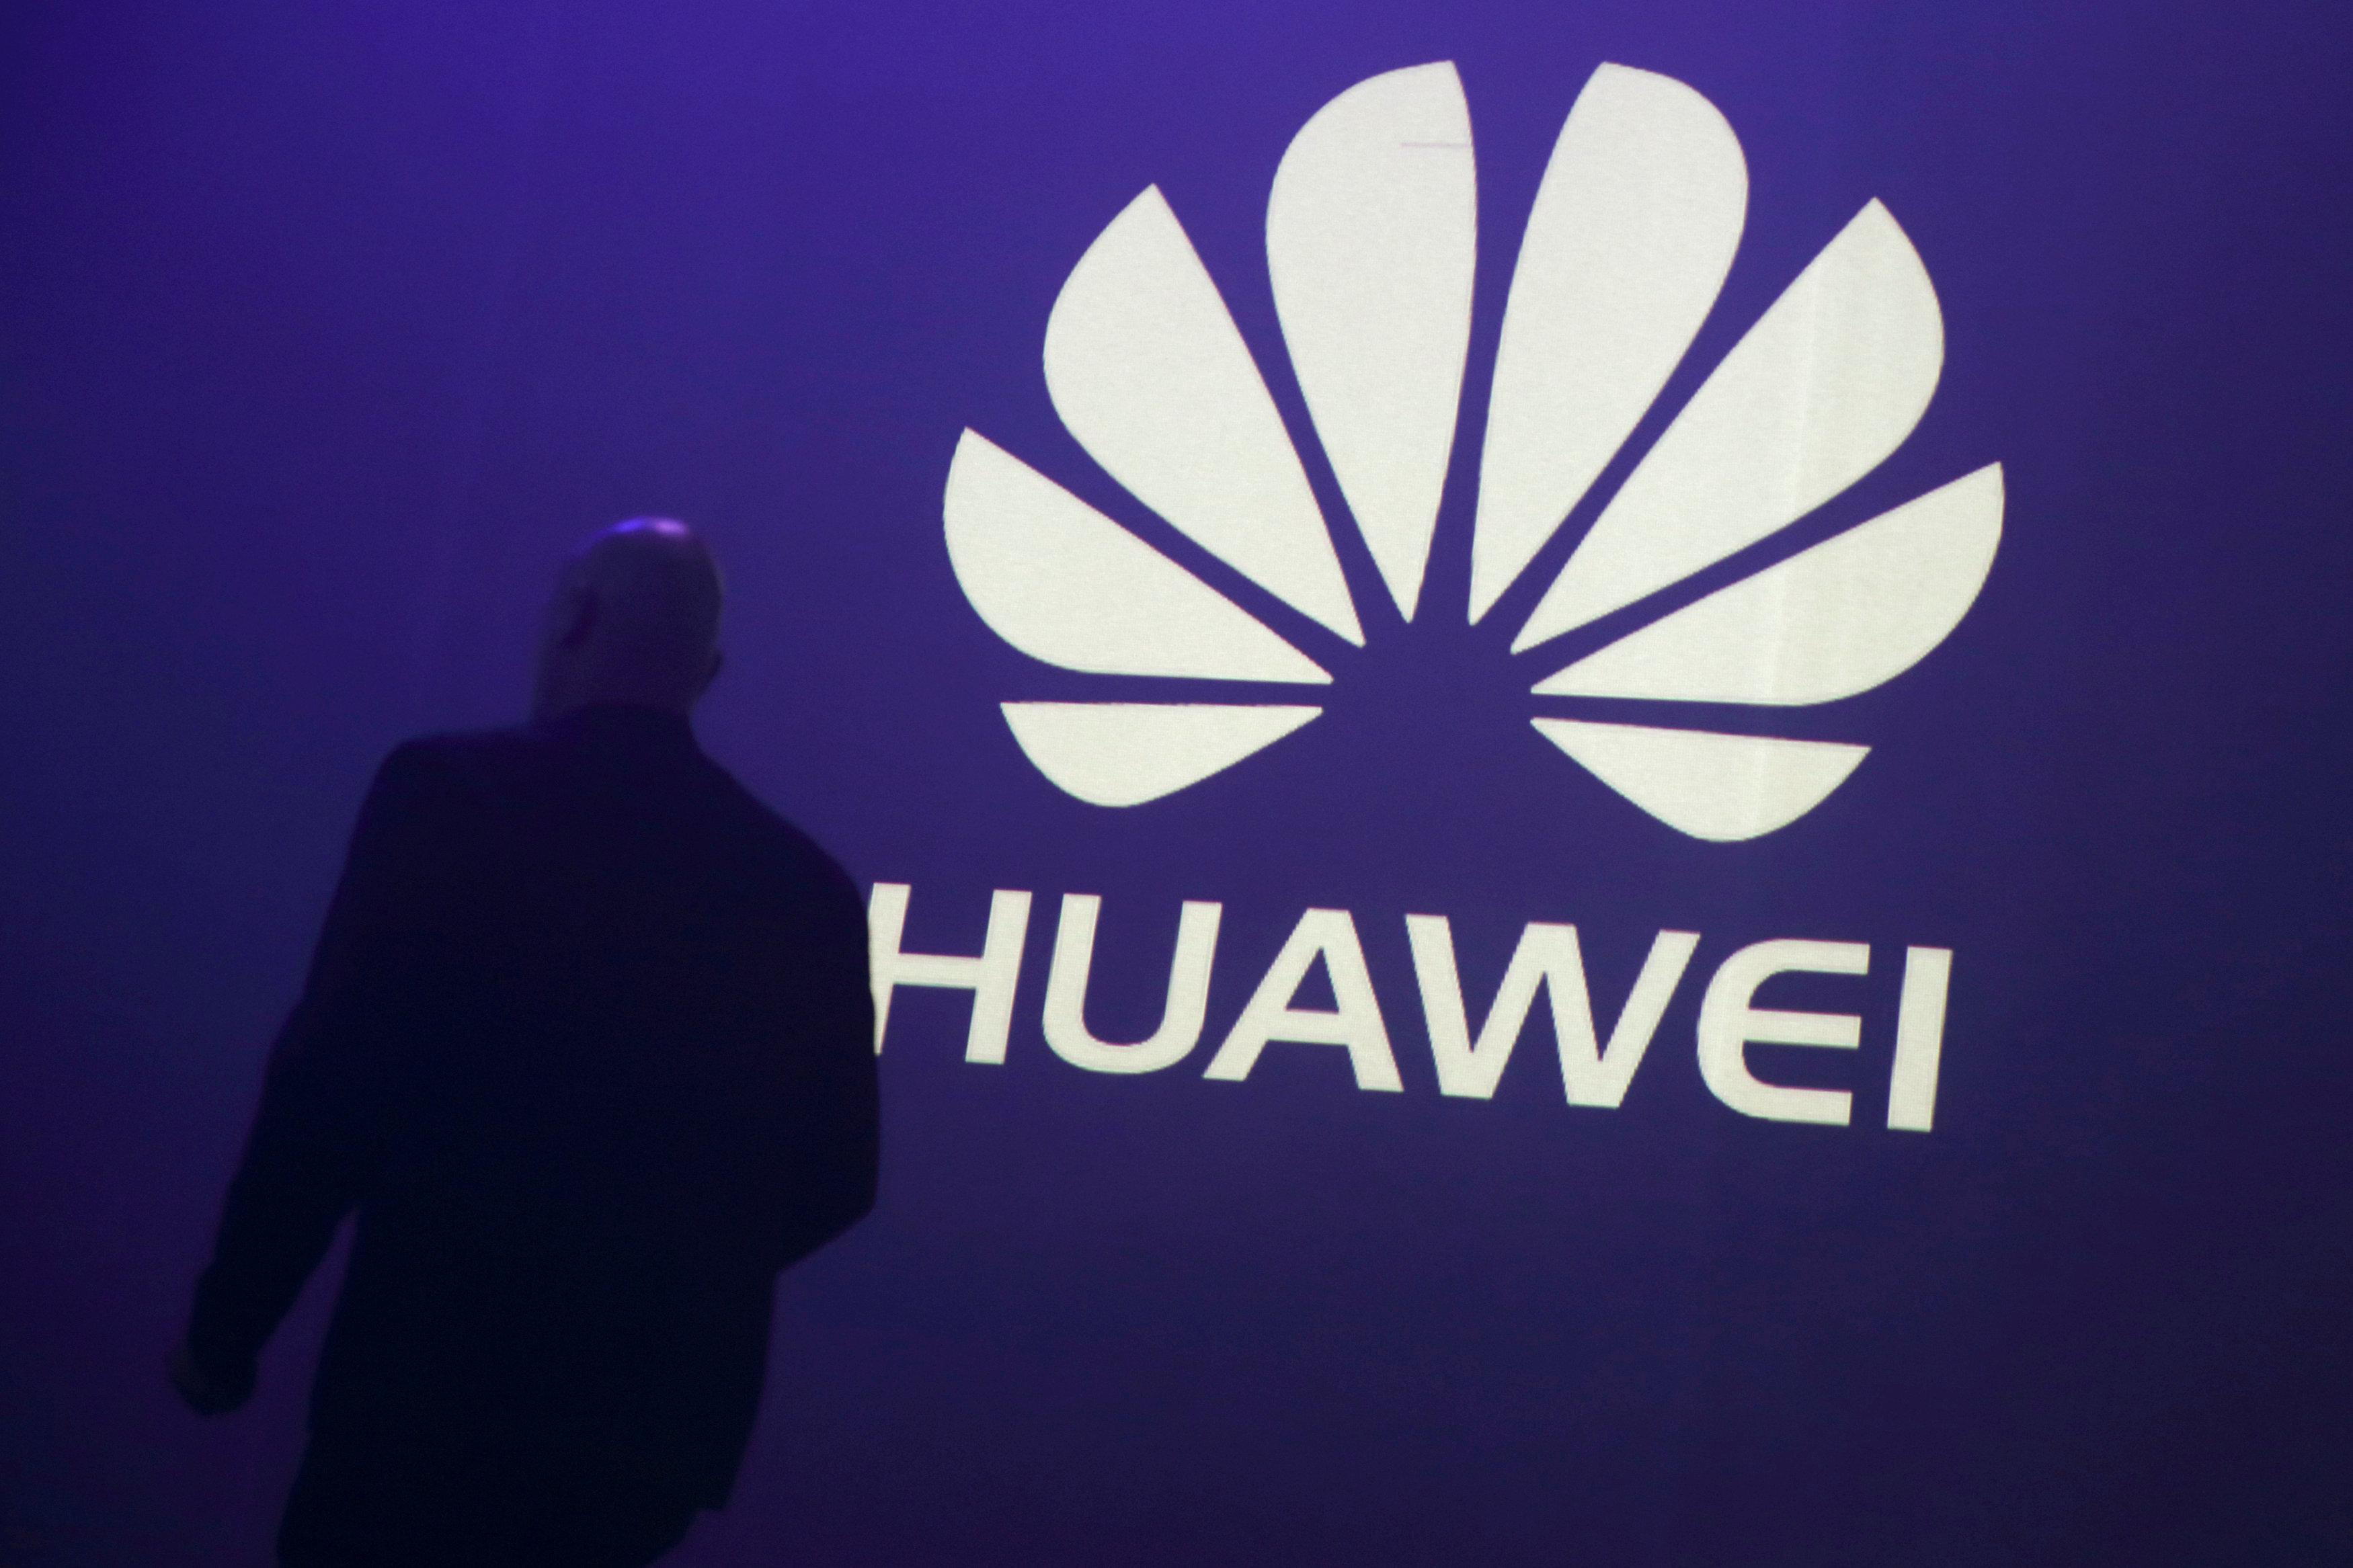 A man walks past a logo during the presentation the Huawei's new smartphone, the Ascend P7, launched by China's Huawei Technologies in Paris, May 7, 2014.  Philippe Wojazer